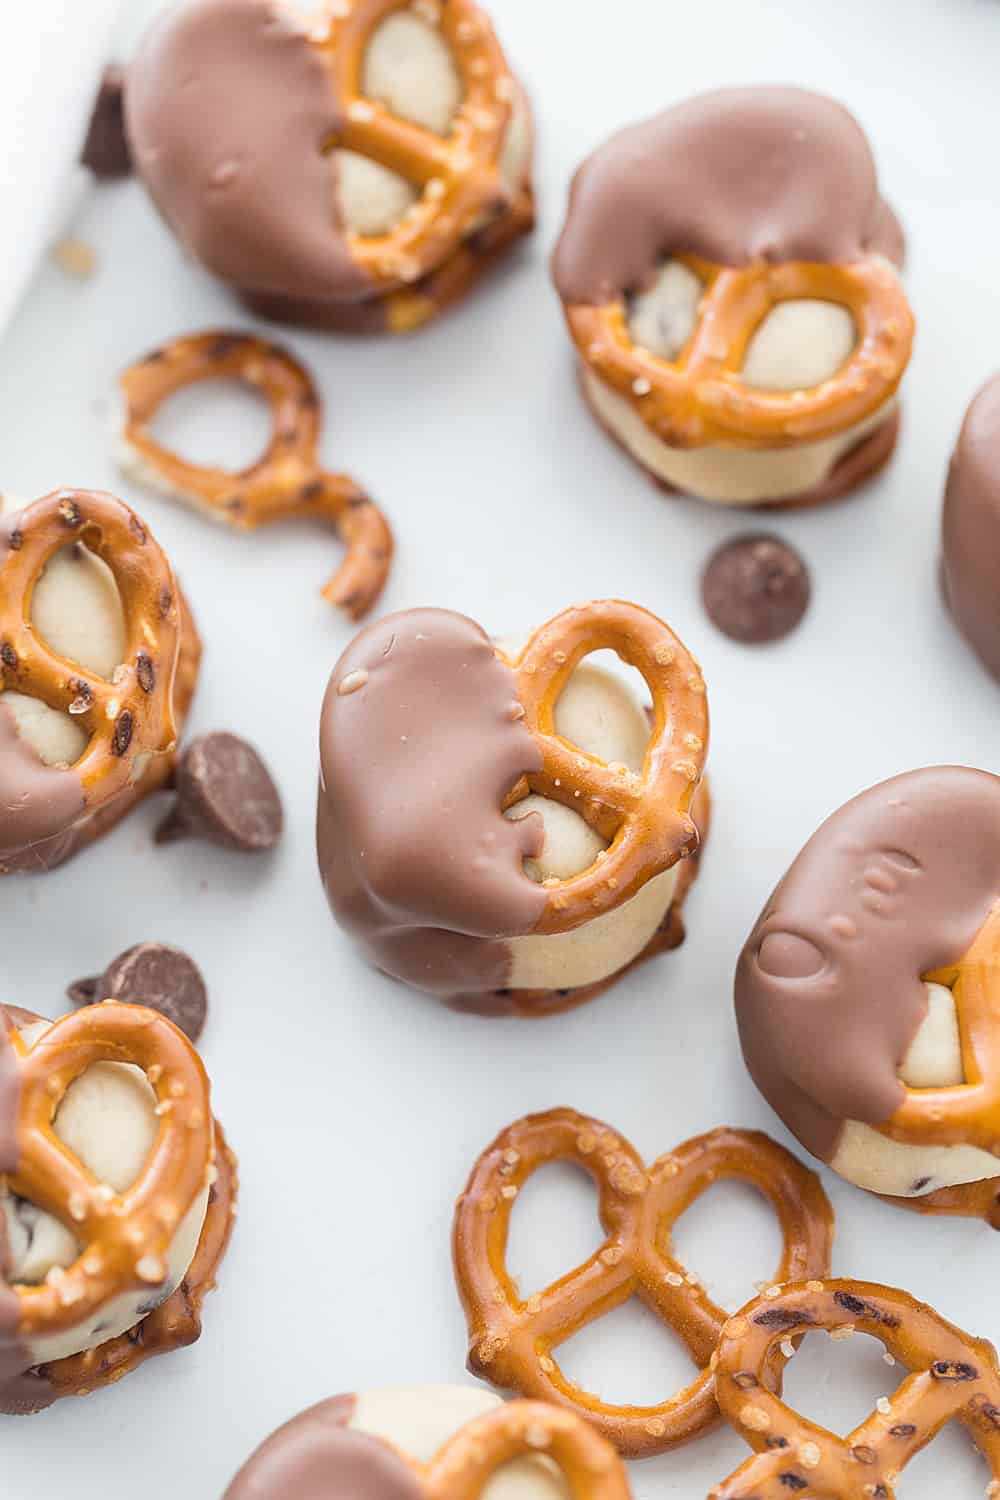 Cookie Dough Pretzel Bites -- Cookie dough pretzel bites offer the irresistible combination of cookie dough, pretzels, and chocolate in a perfectly portioned dessert! #cookiedough #pretzel #pretzelbites #pretzelcandy #baking #dessert #easyrecipe #easydessert #nobakedessert